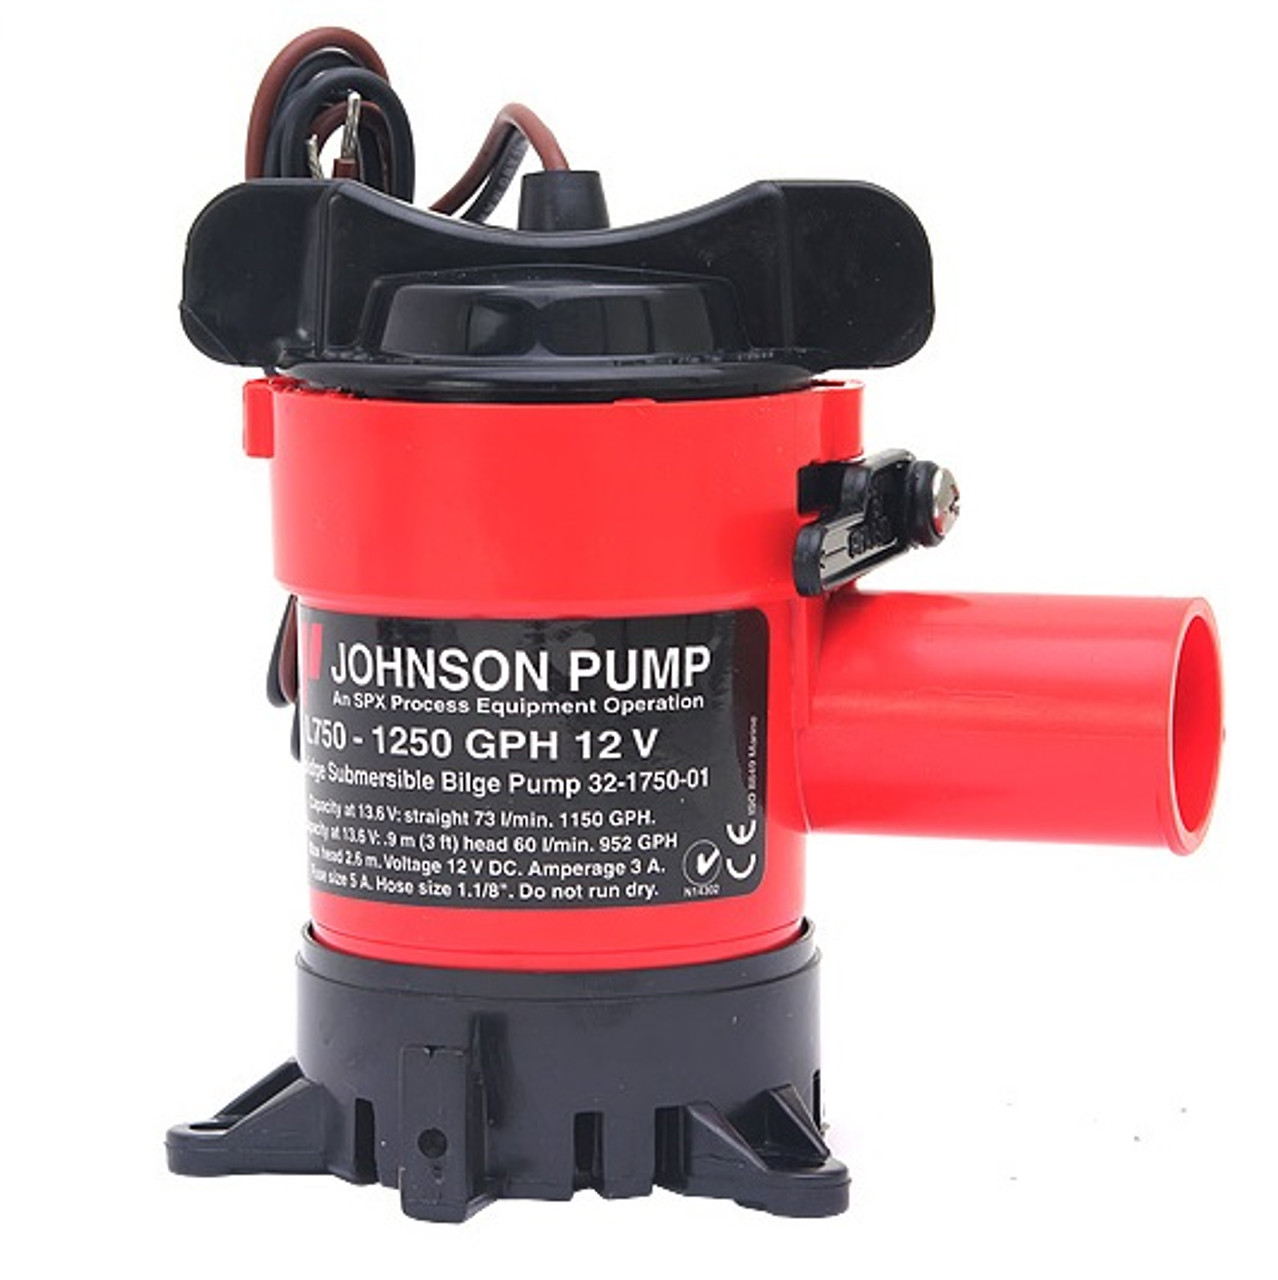 SPX Flow Johnson Pump L750 12V Bilge Pump SFBP1-G1100-01 (J-32-1750-01)